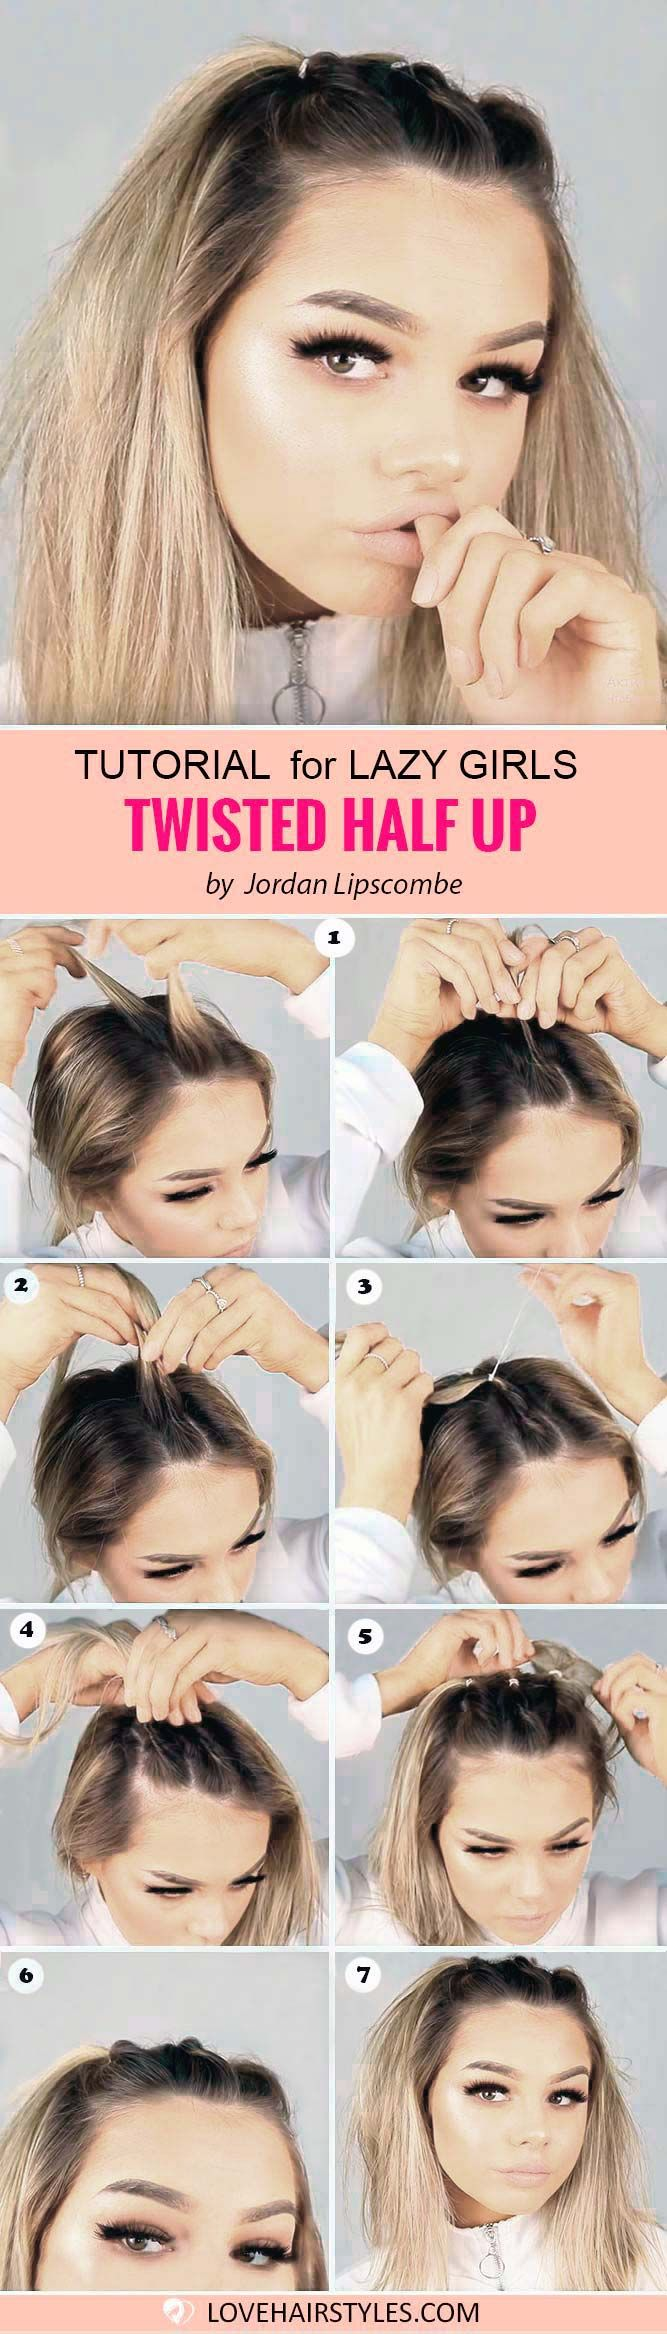 10 Perfectly Easy Hairstyles For Medium Hair Medium Hair Styles Cute Hairstyles For Medium Hair Medium Length Hair Styles